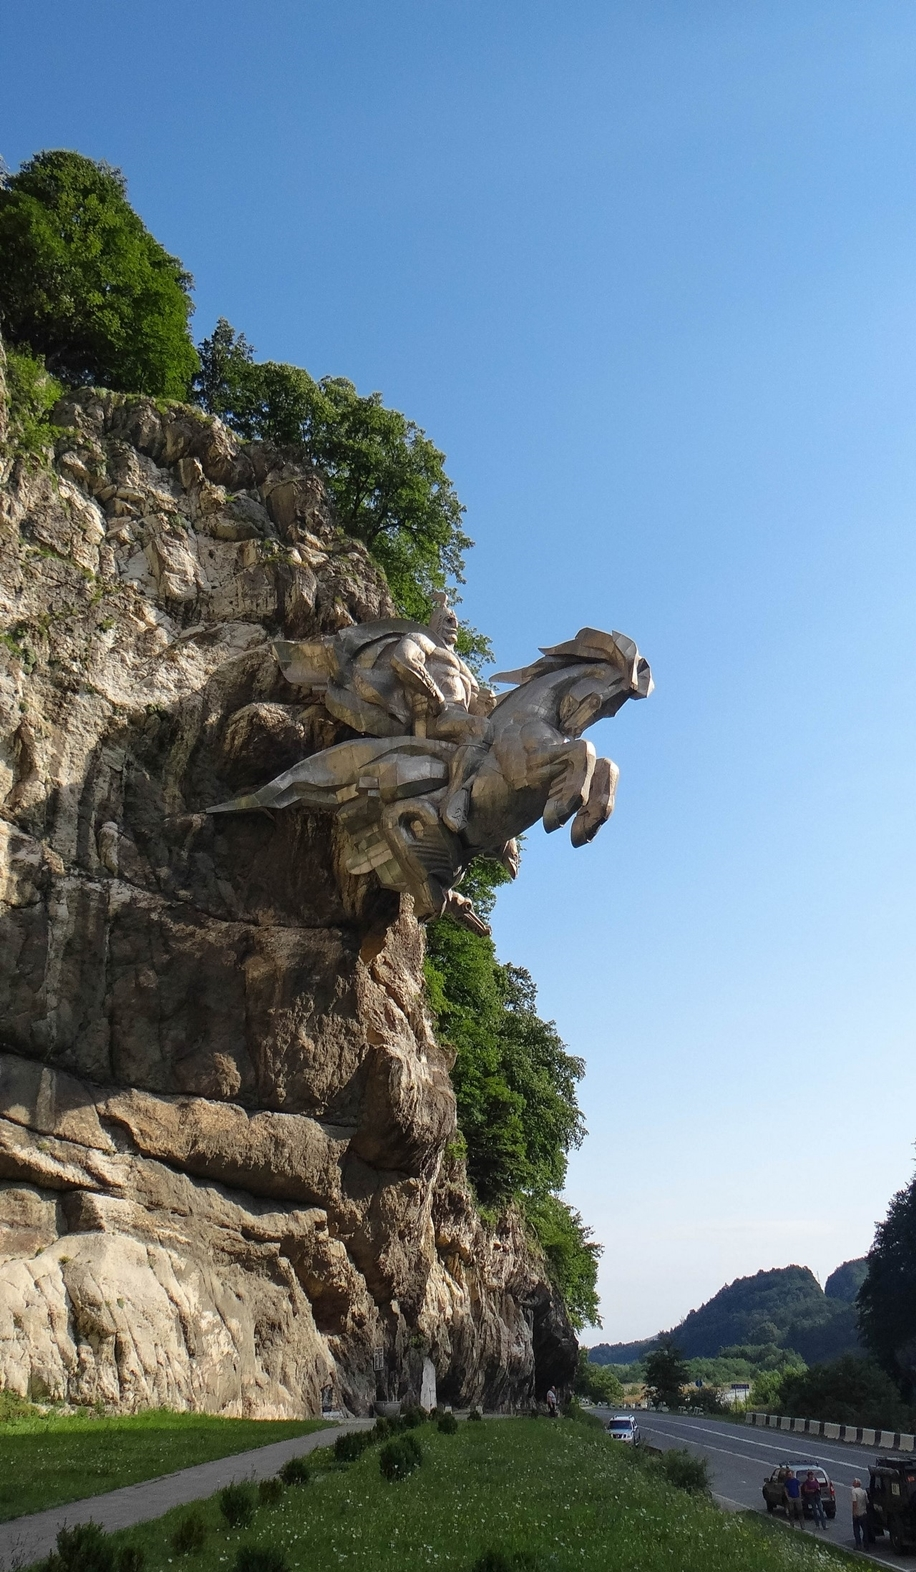 The statue of St. George in North Ossetia_8